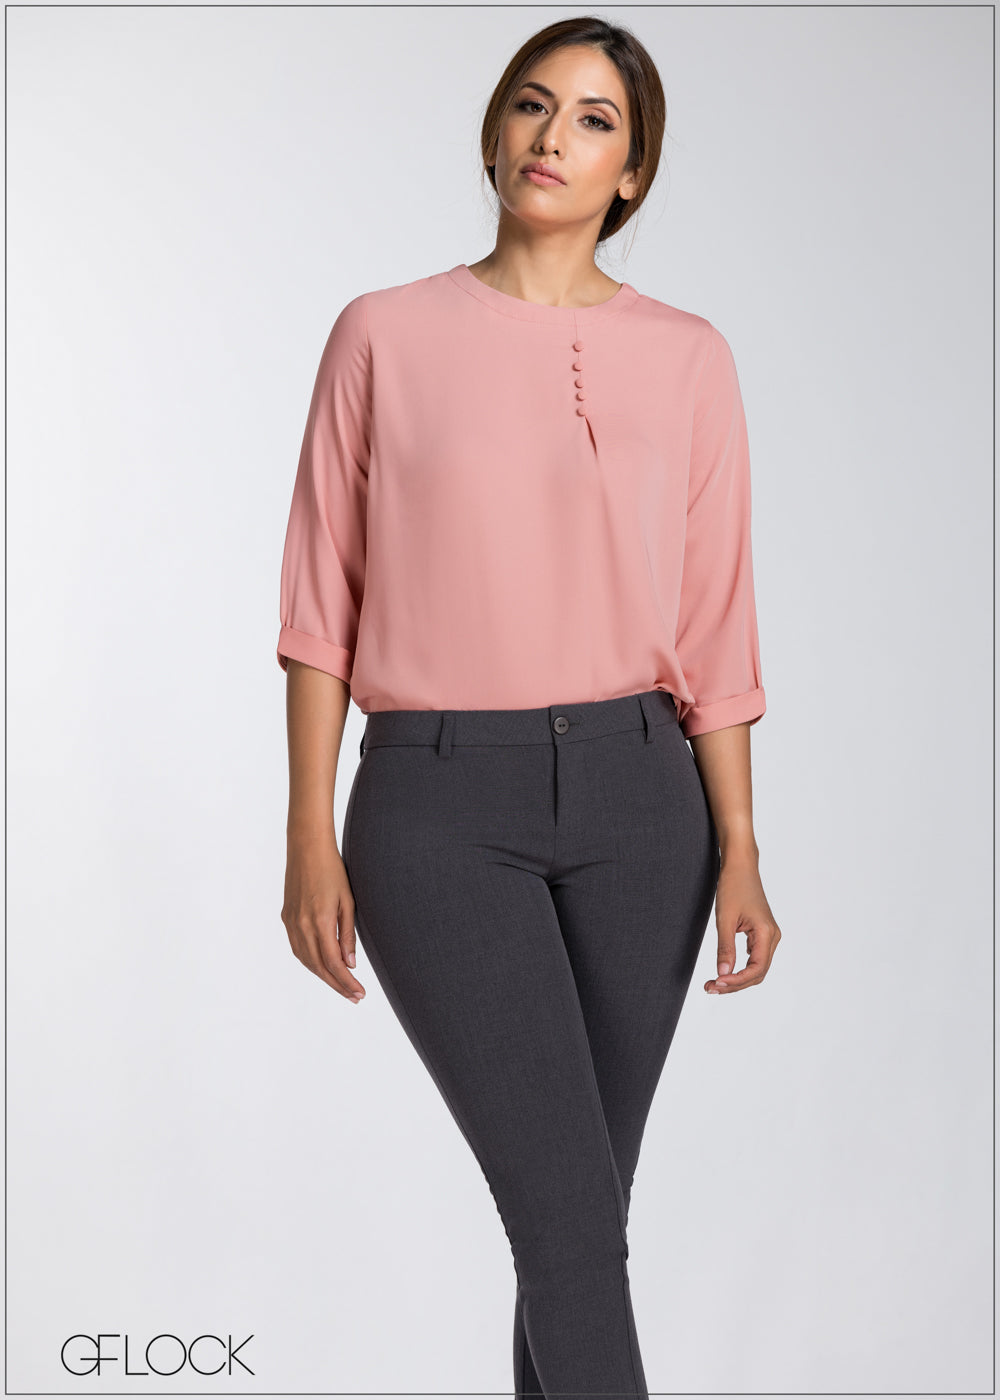 Neck Button Detail Workwear Top